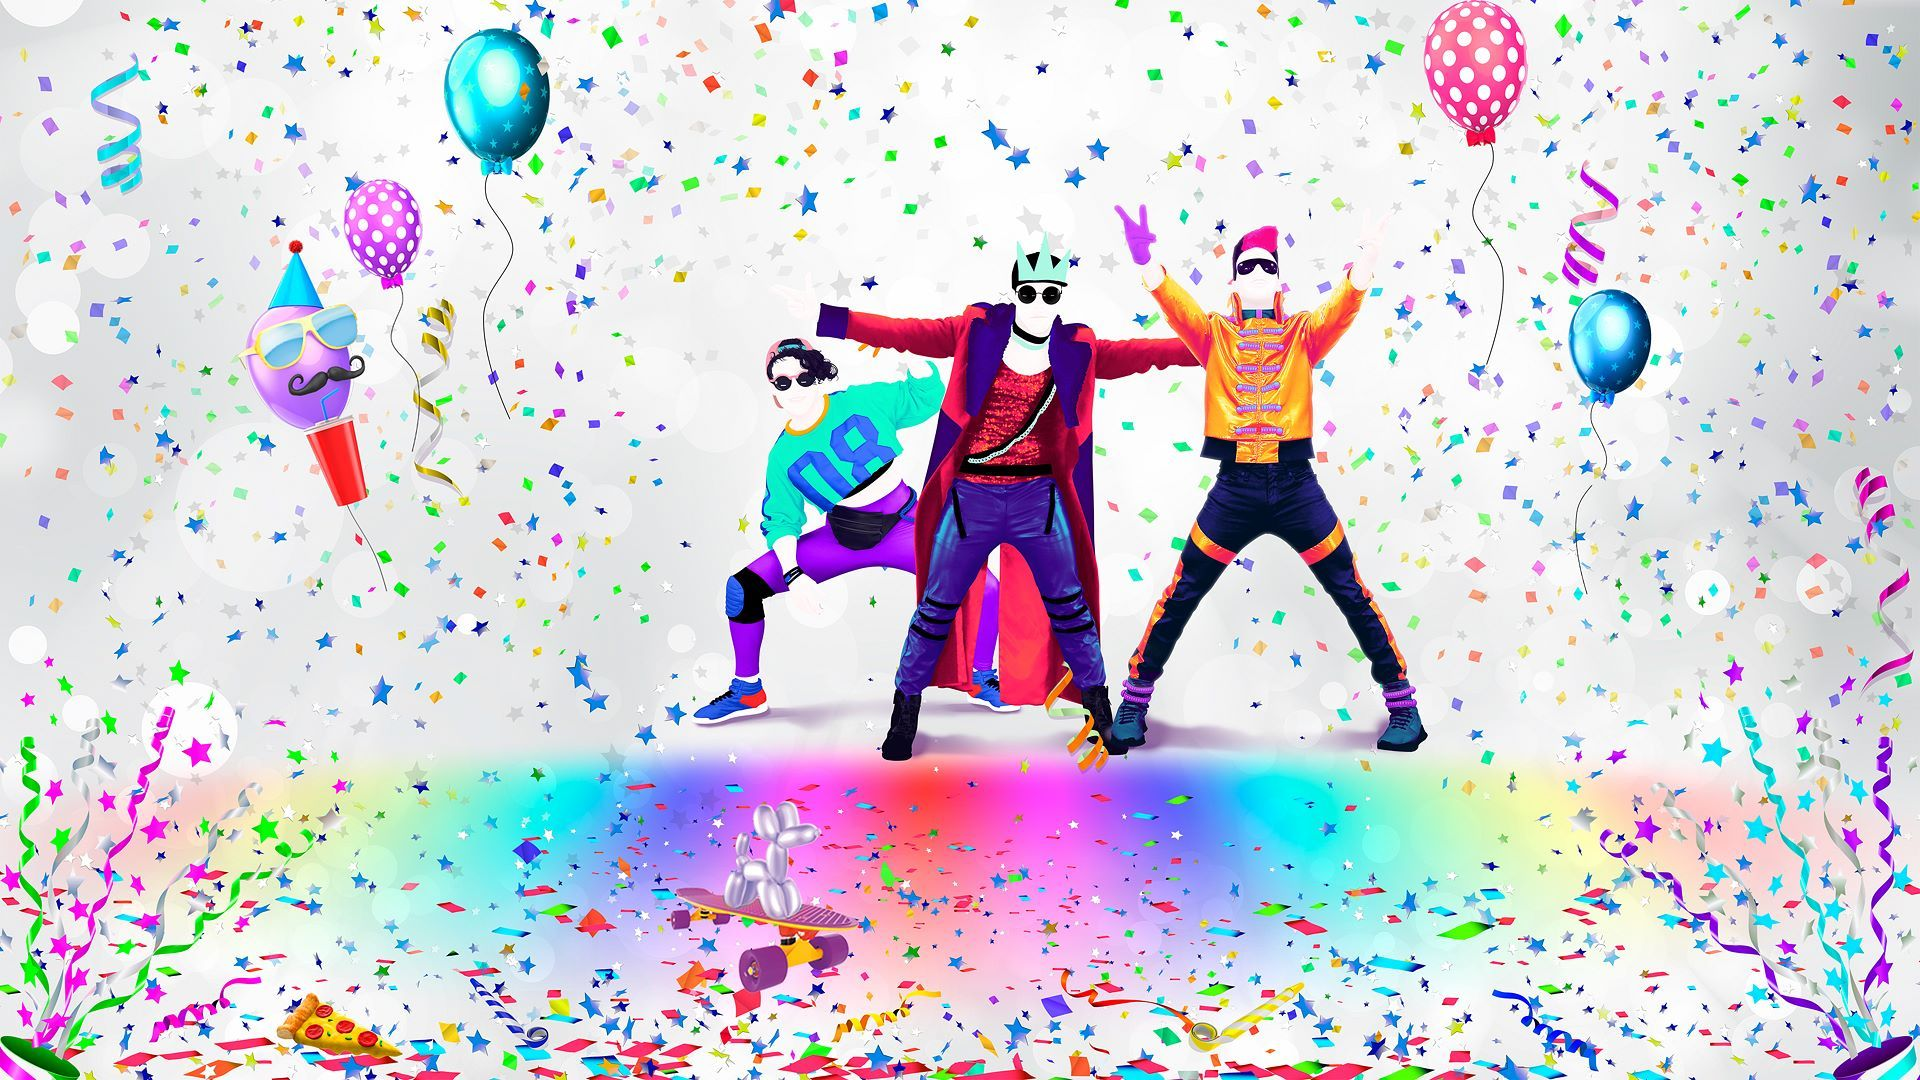 Video Game Just Dance 2019 Wallpaper 67370 1920x1080px 1920x1080